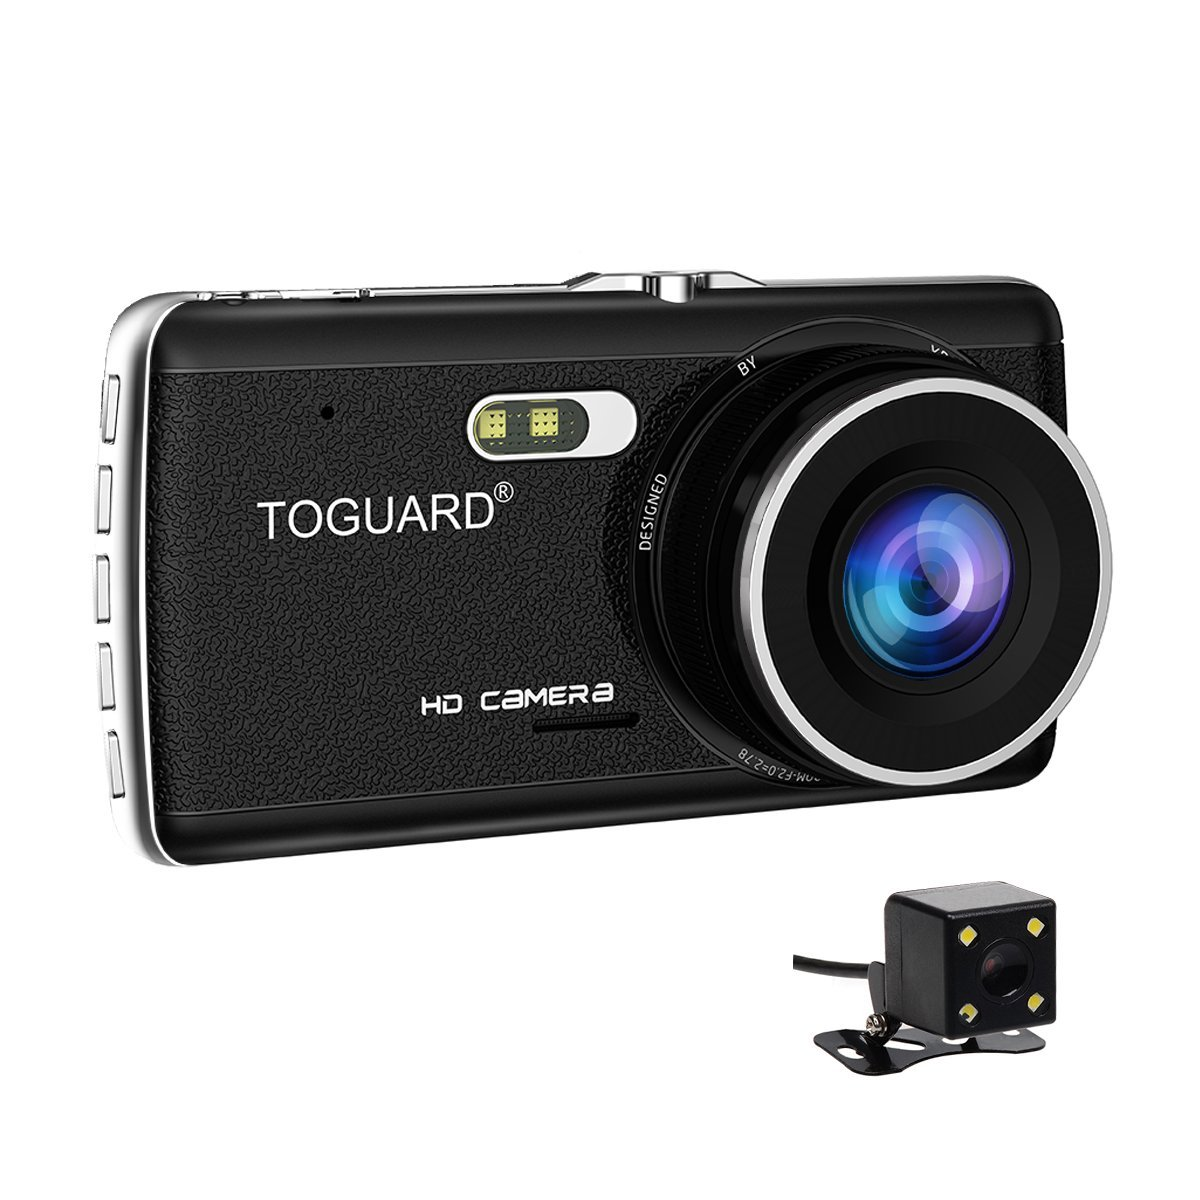 TOGUARD Dual Lens Dash Cam front and rear recording ATST, Night Vision,4.0'' IPS Screen,HD 1080P Car Dash Camera, Rearview Backup Camera,170 Degree Wide Angle, WDR, Loop Recording, G-sensor, Parking monitor 1